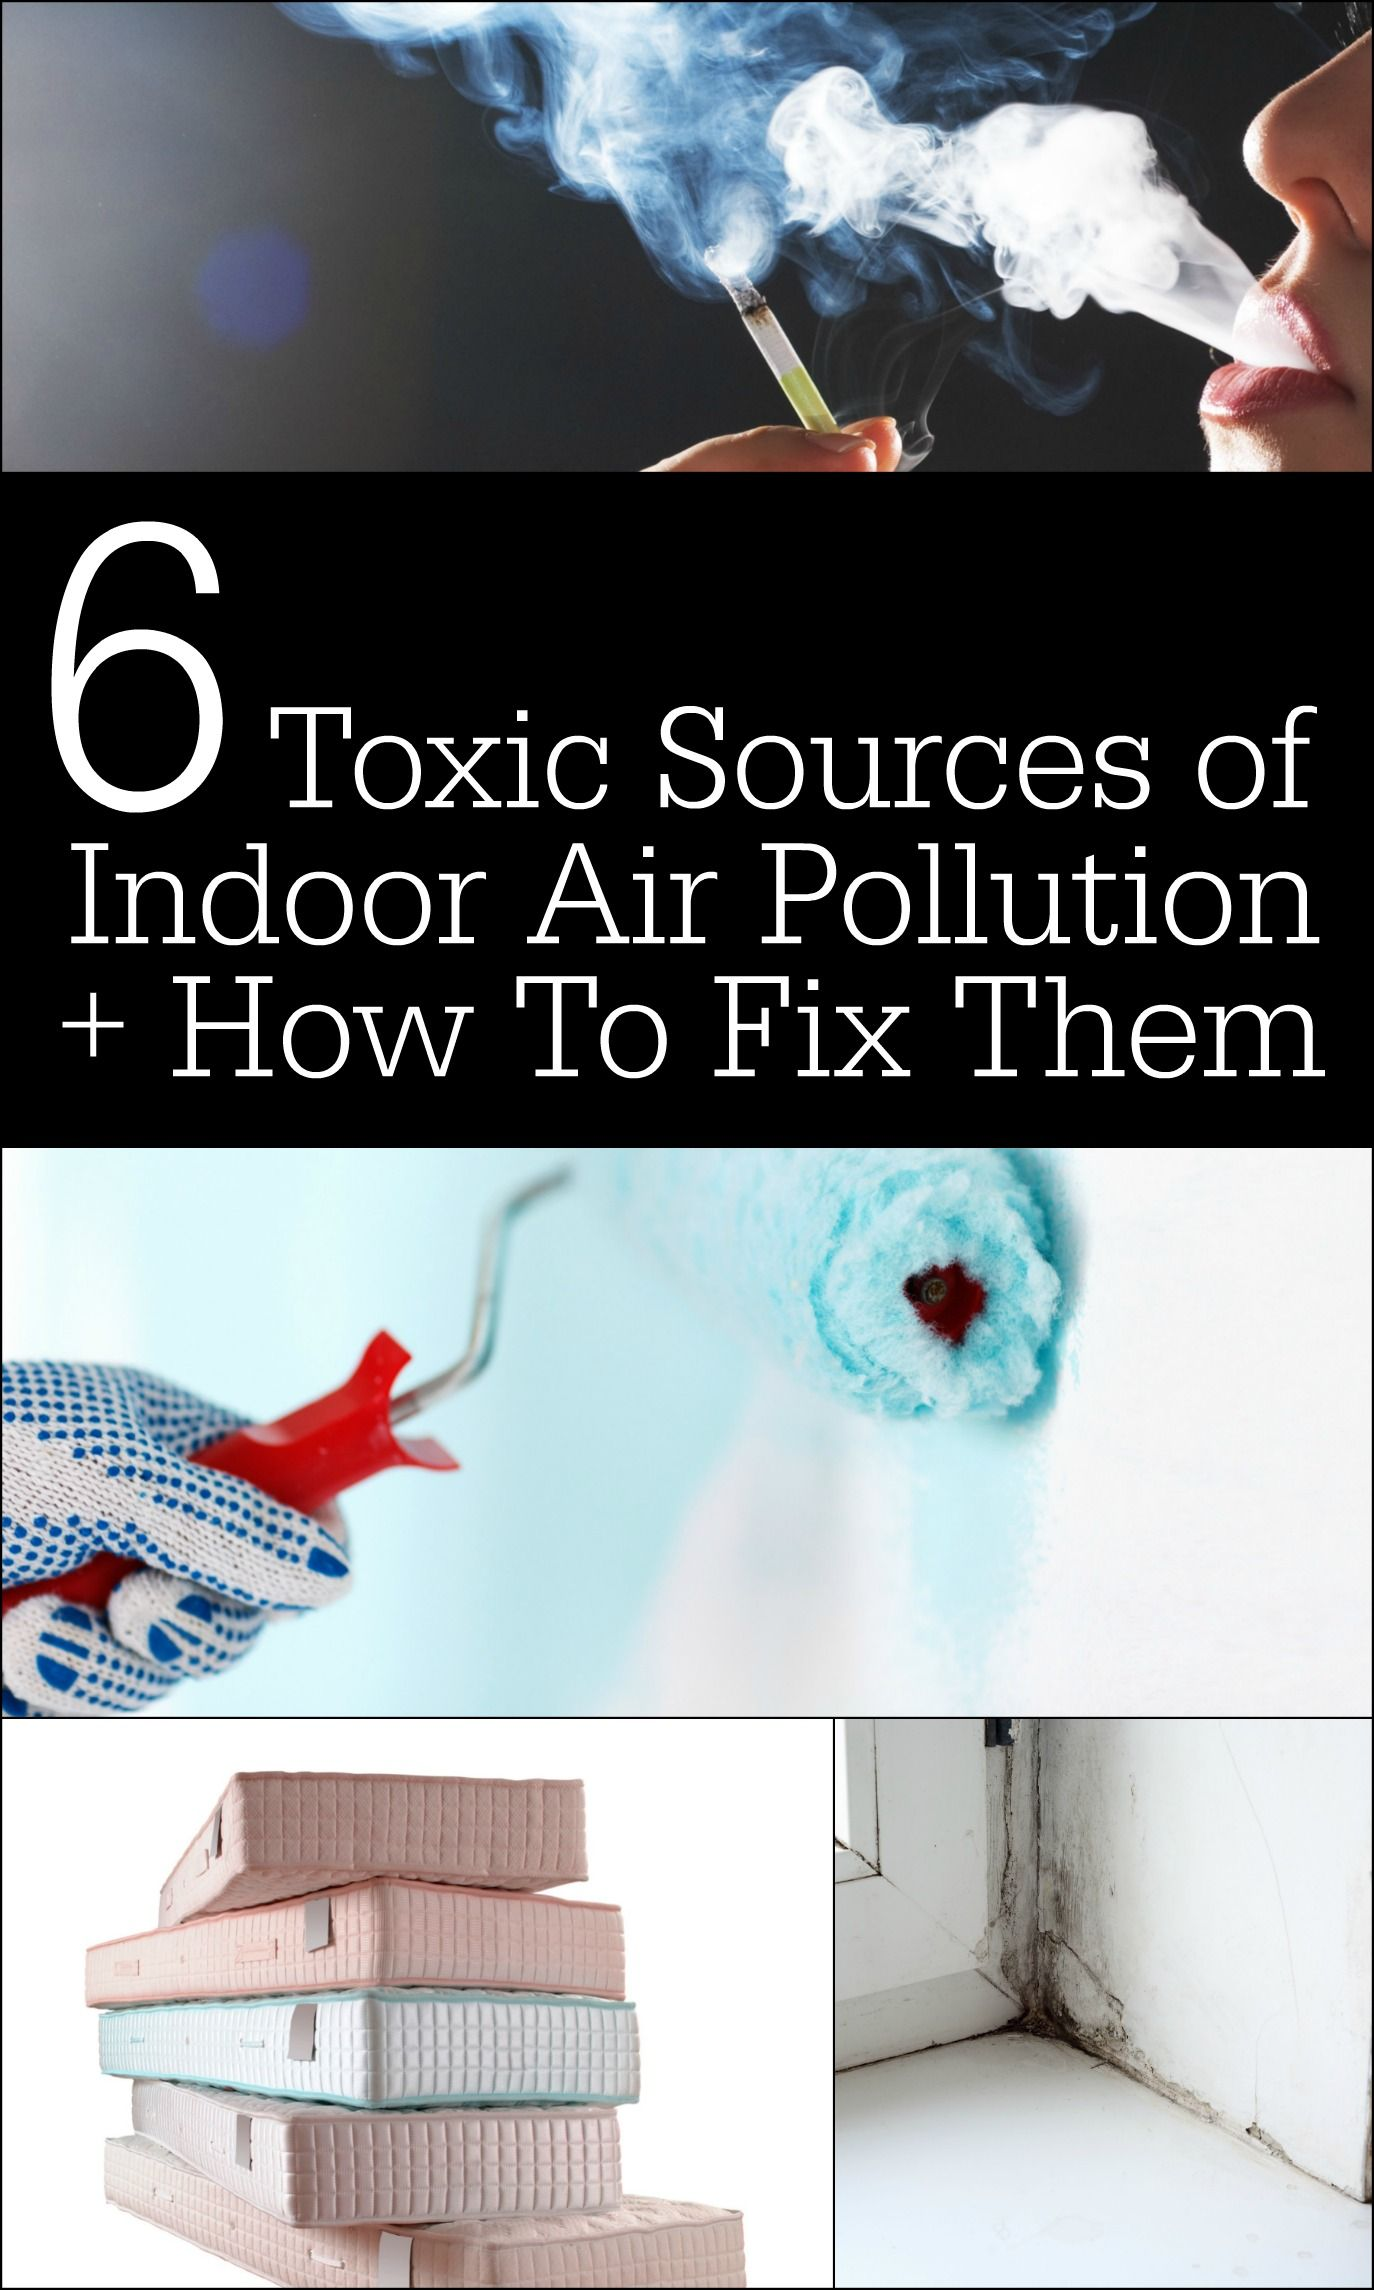 6 Toxic Sources Of Indoor Air Pollution + How To Fix Them